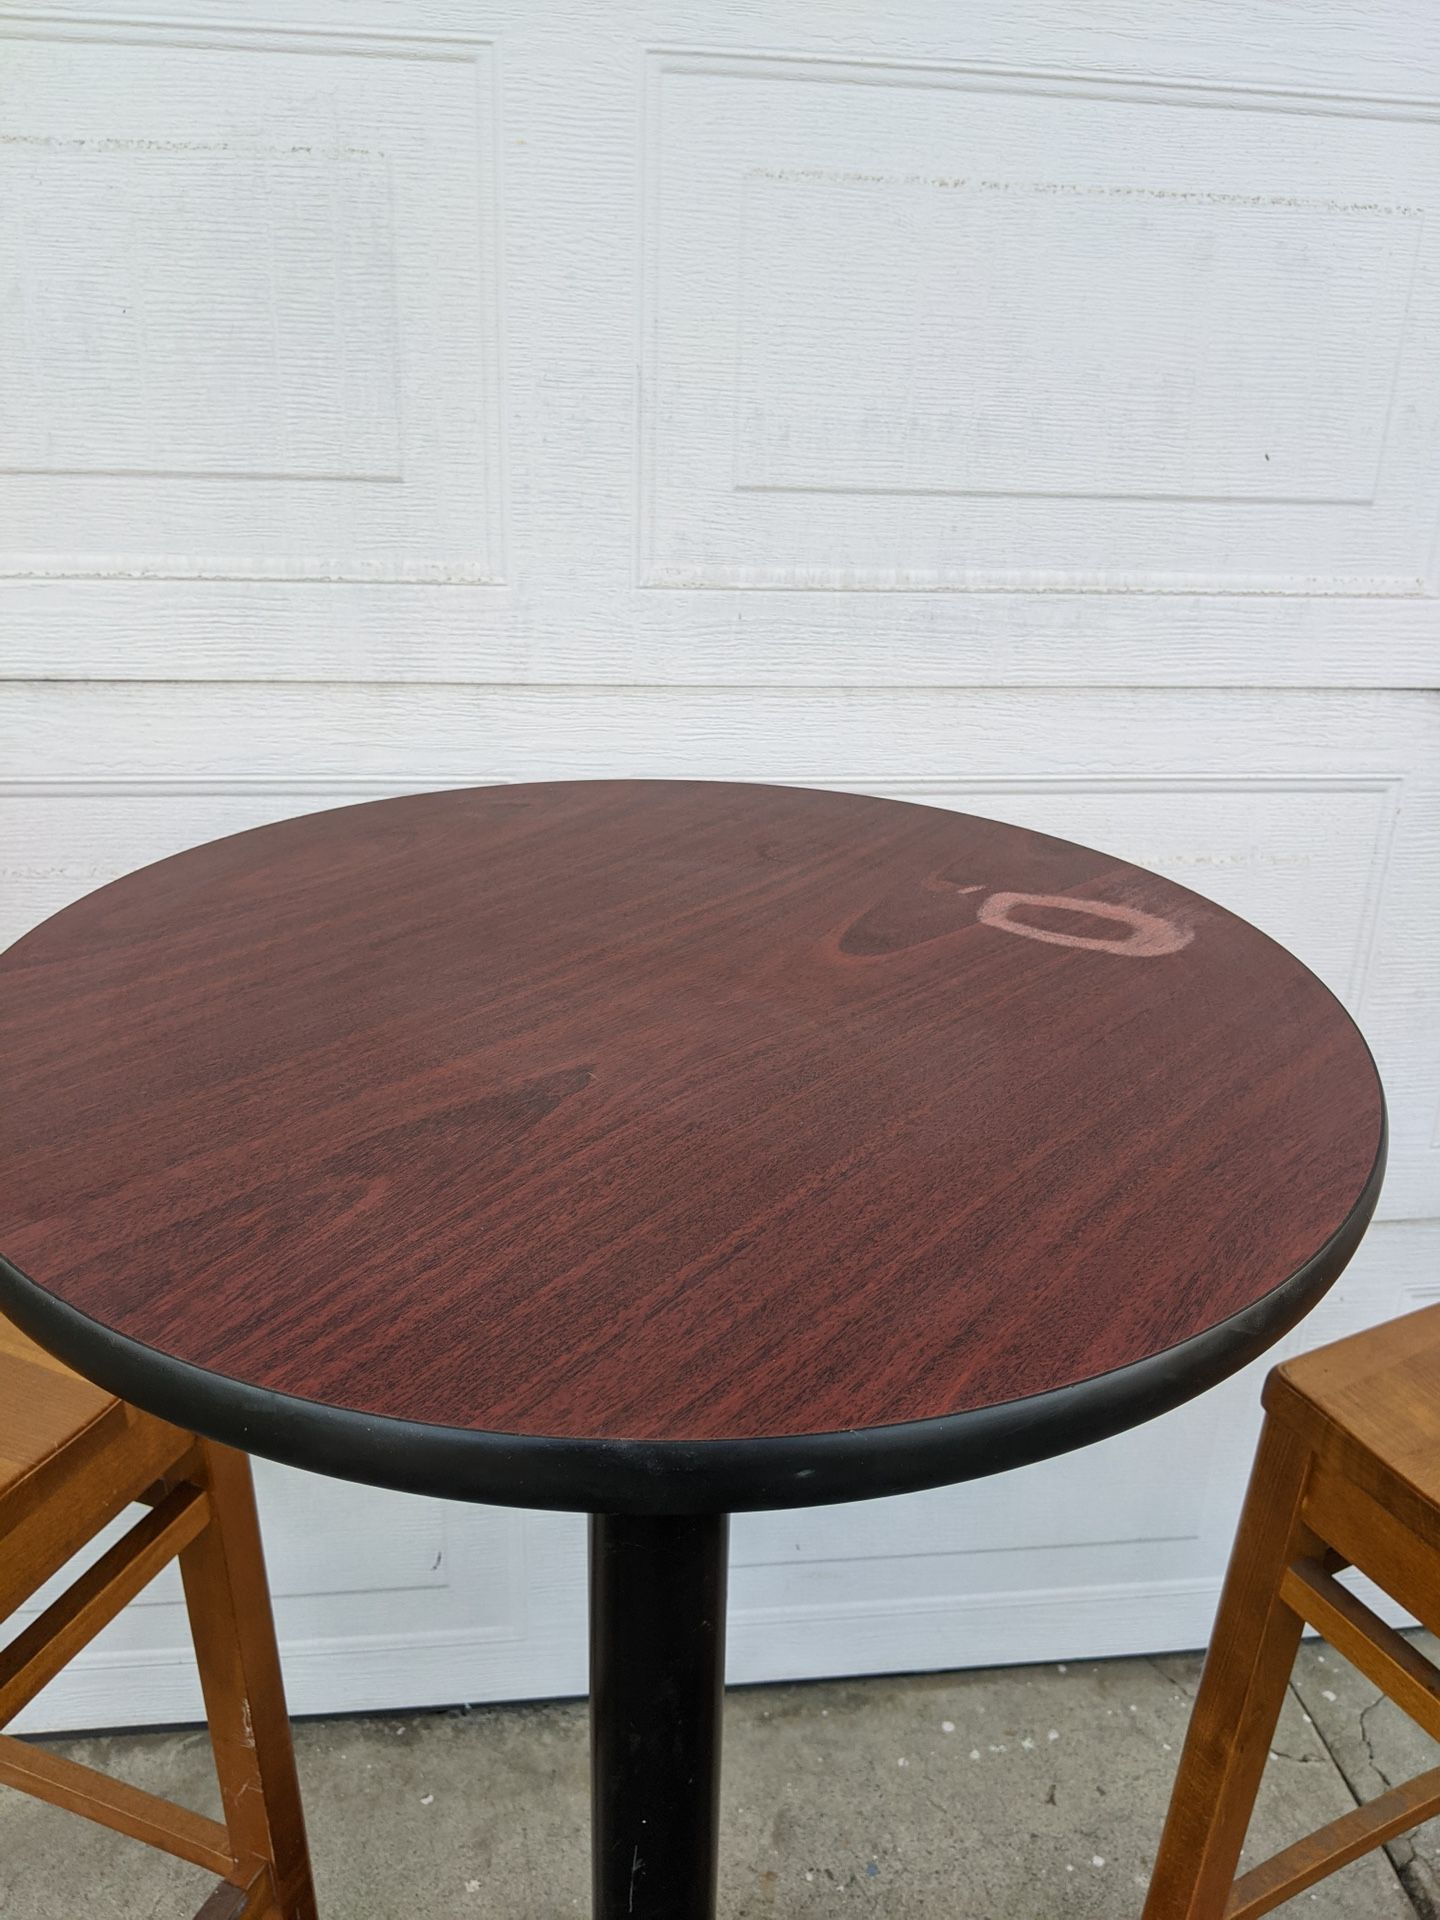 Bar Height Patio/Cafe/Restaurant Tables For 2 (2 Sets)